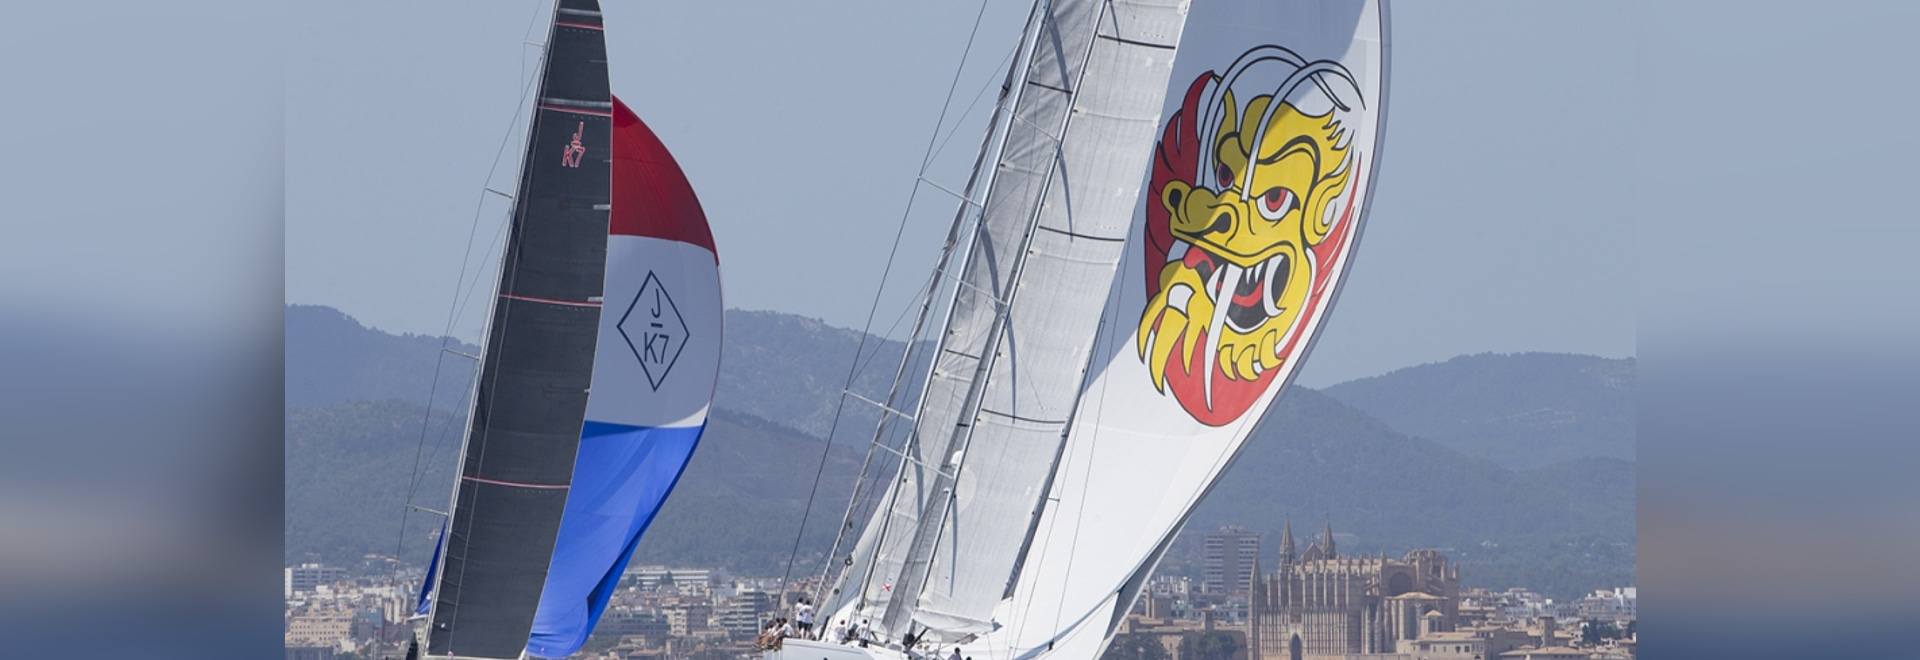 Superyacht Cup Palma cancelled